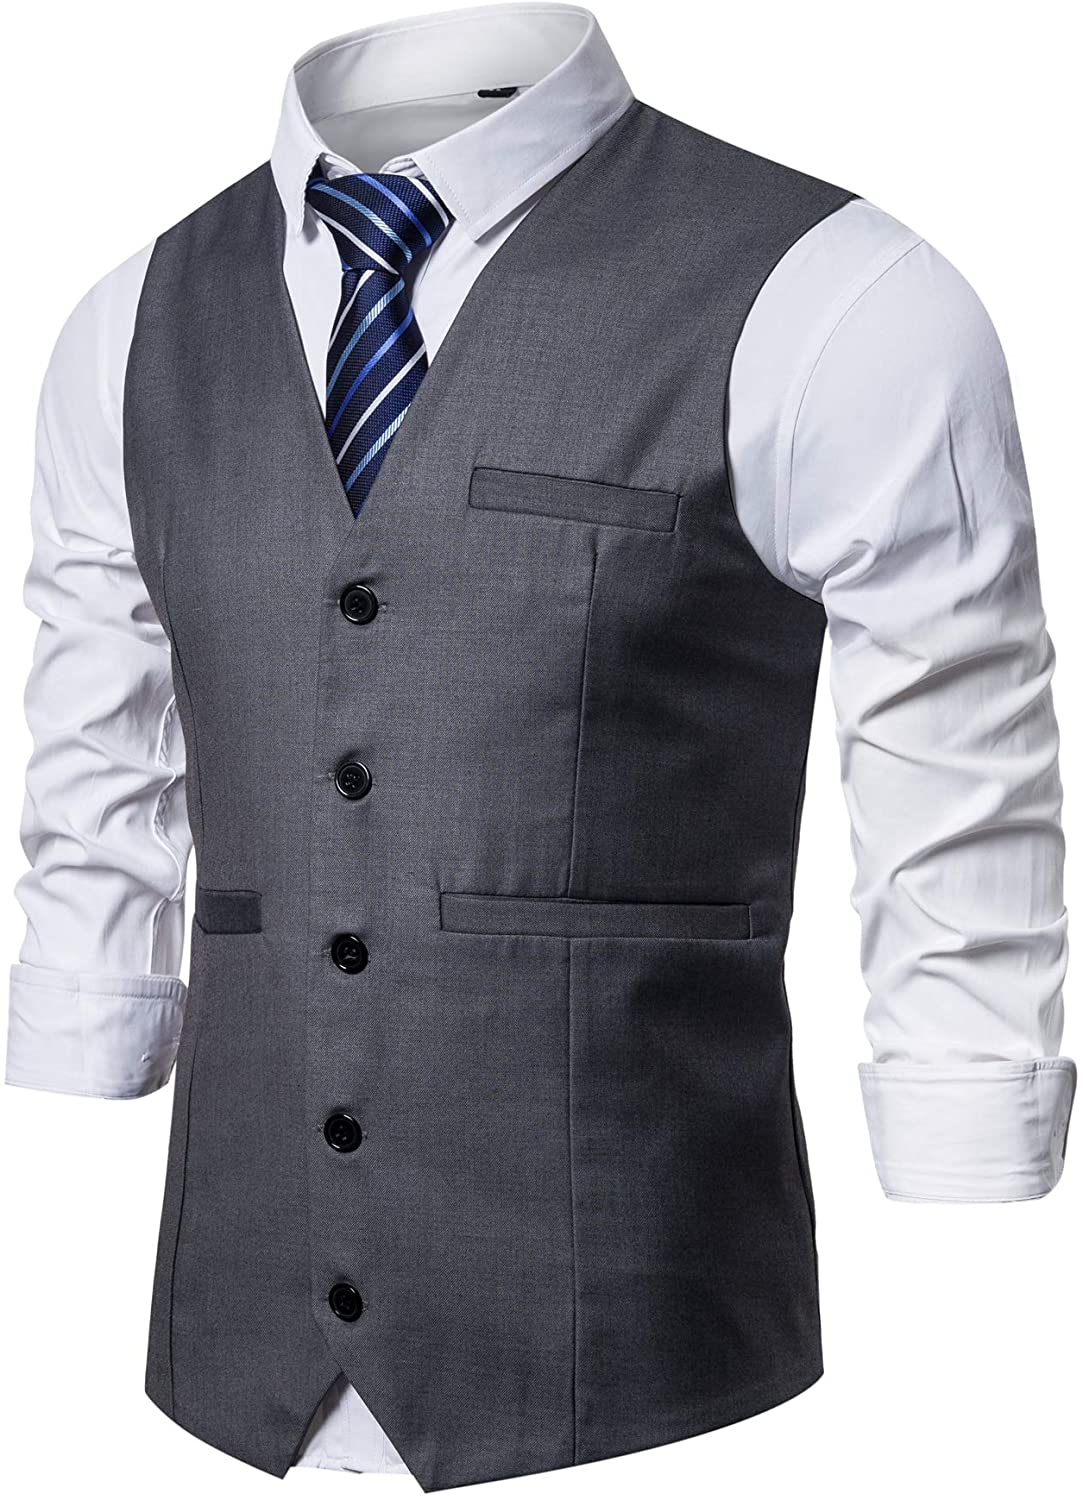 AOYOG Mens Formal Business Suit Vests 5 Buttons Regular Fit Waistcoat for Suit or Tuxedo